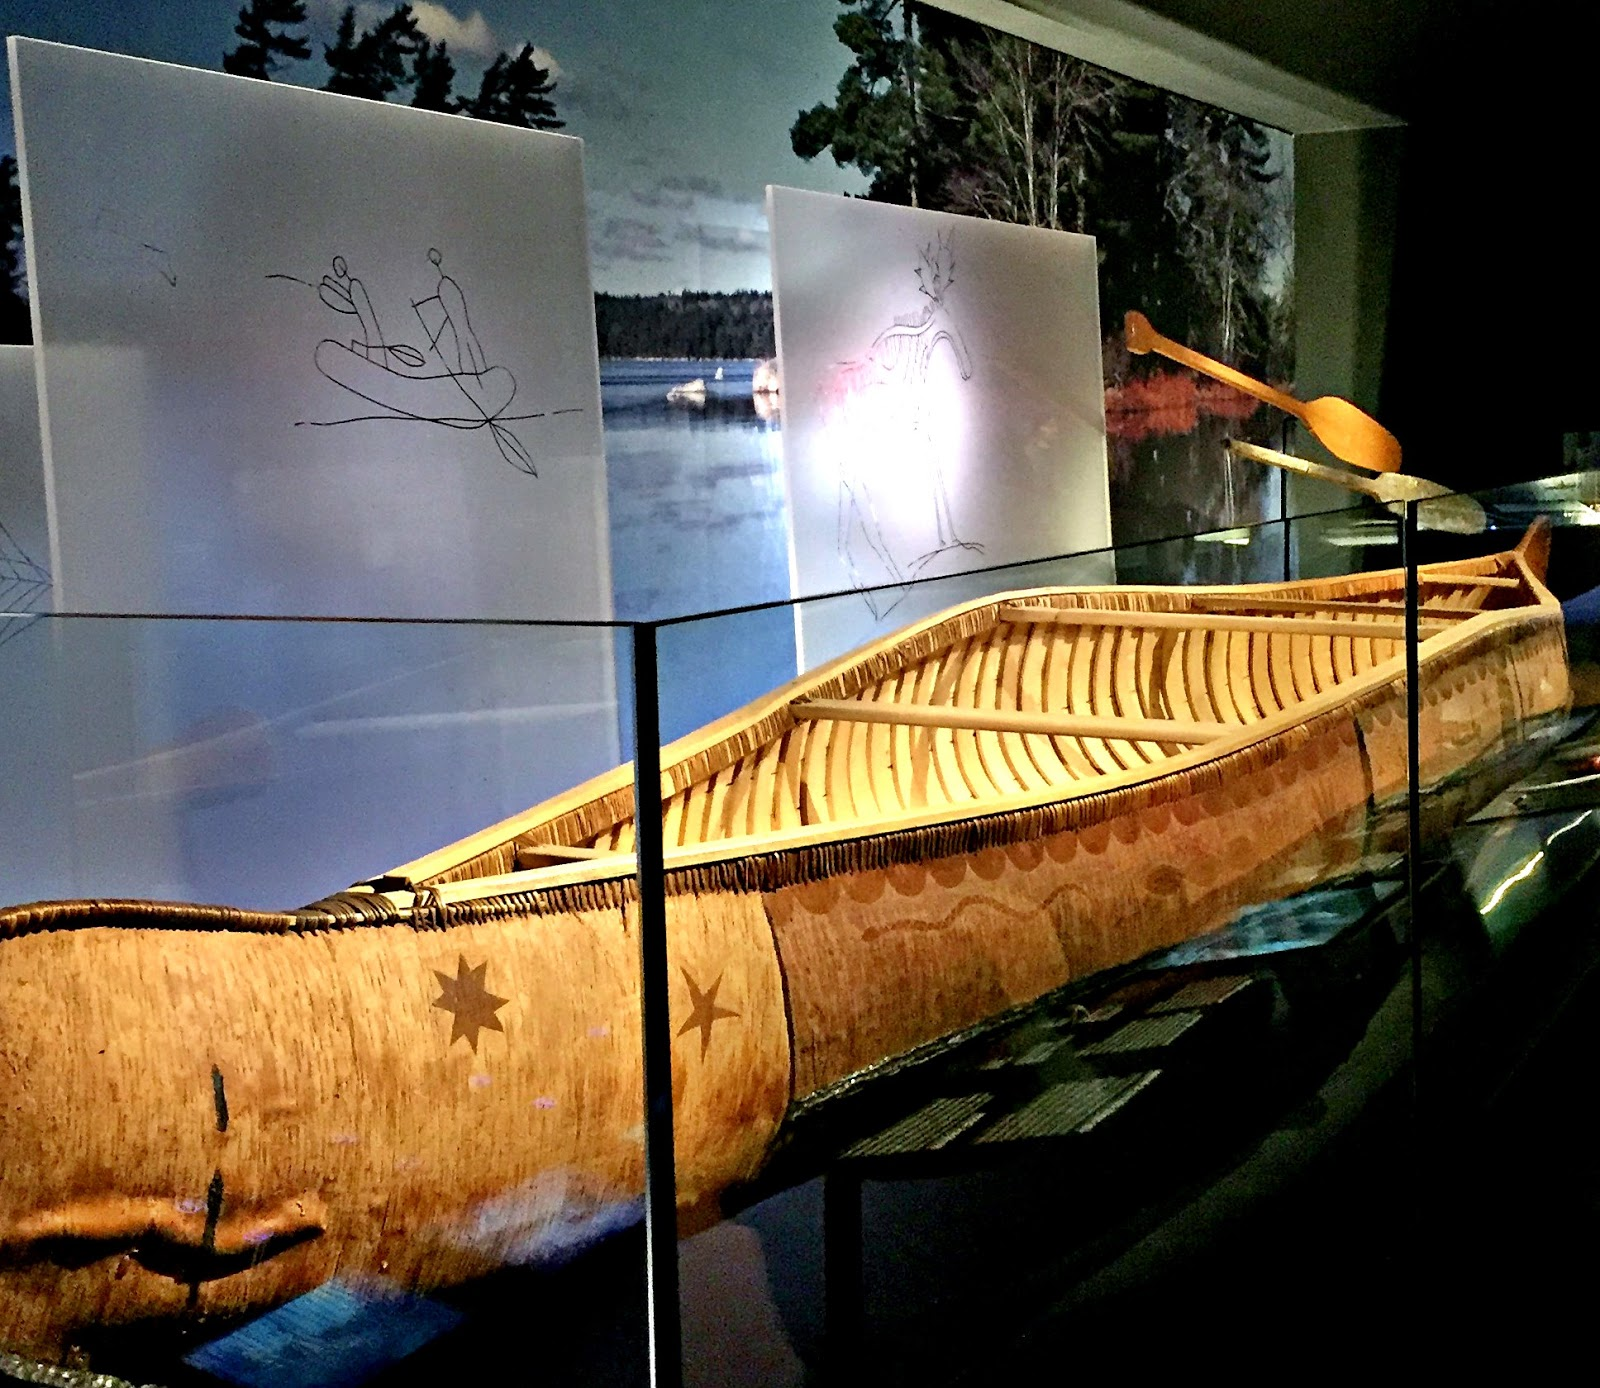 Canoe in the Canadian History Hall | kathleenhelen